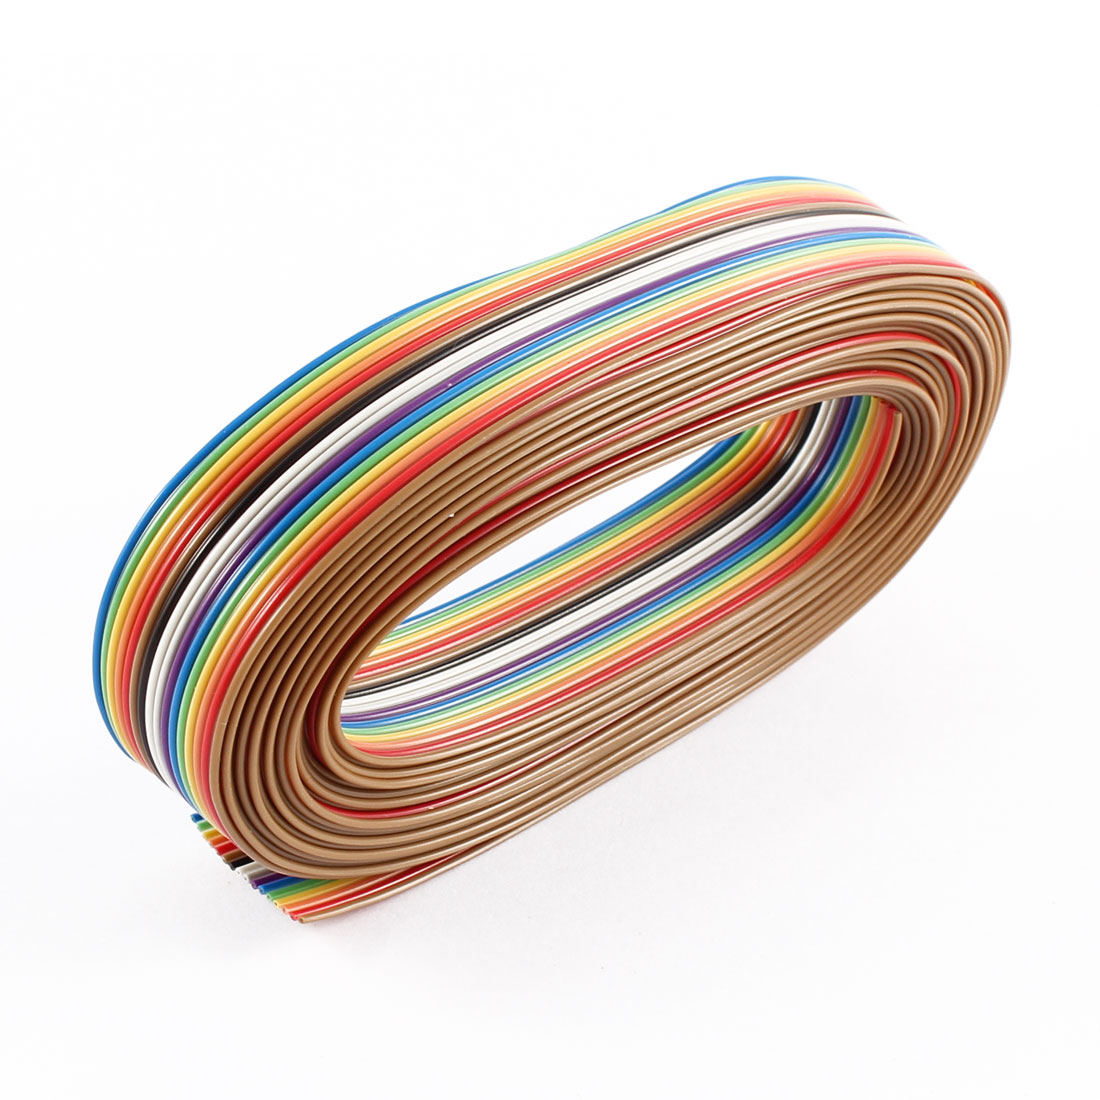 цена UXCELL 13Ft 4M Length 16 Way 16 Pin Rainbow Color Flat Ribbon Cable Idc Wire 1.27Mm Spacing Diy For Clean Terminations